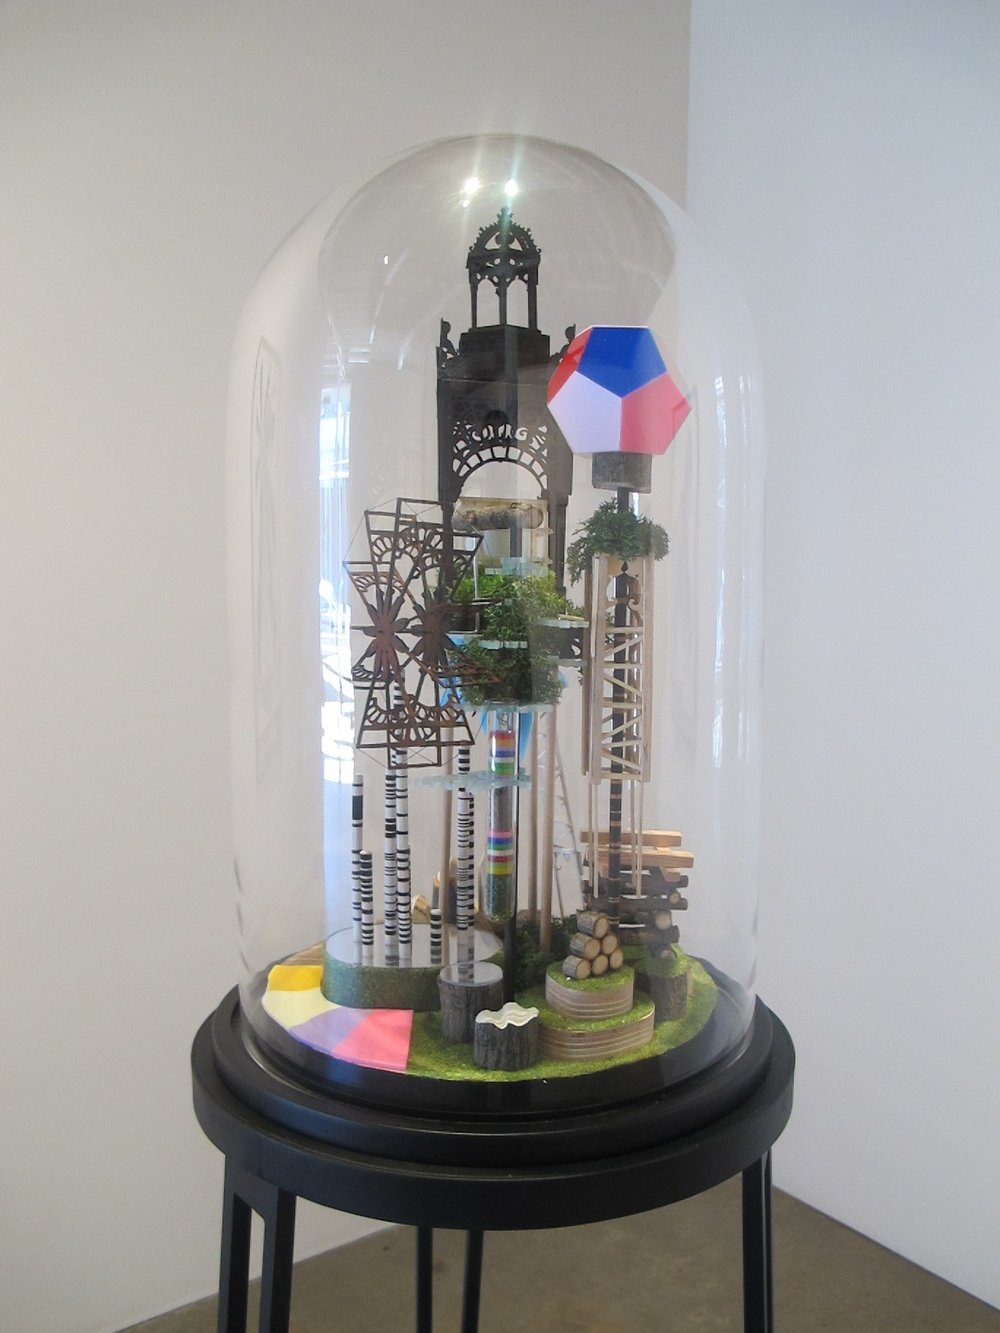 Simon MacEwan,  The works of industry of all nations , 2011, steel, wood, perspex, foam, wood veneer, lichen, model grass, ping pong ball, glass dome, 160 x 40 x 40cm